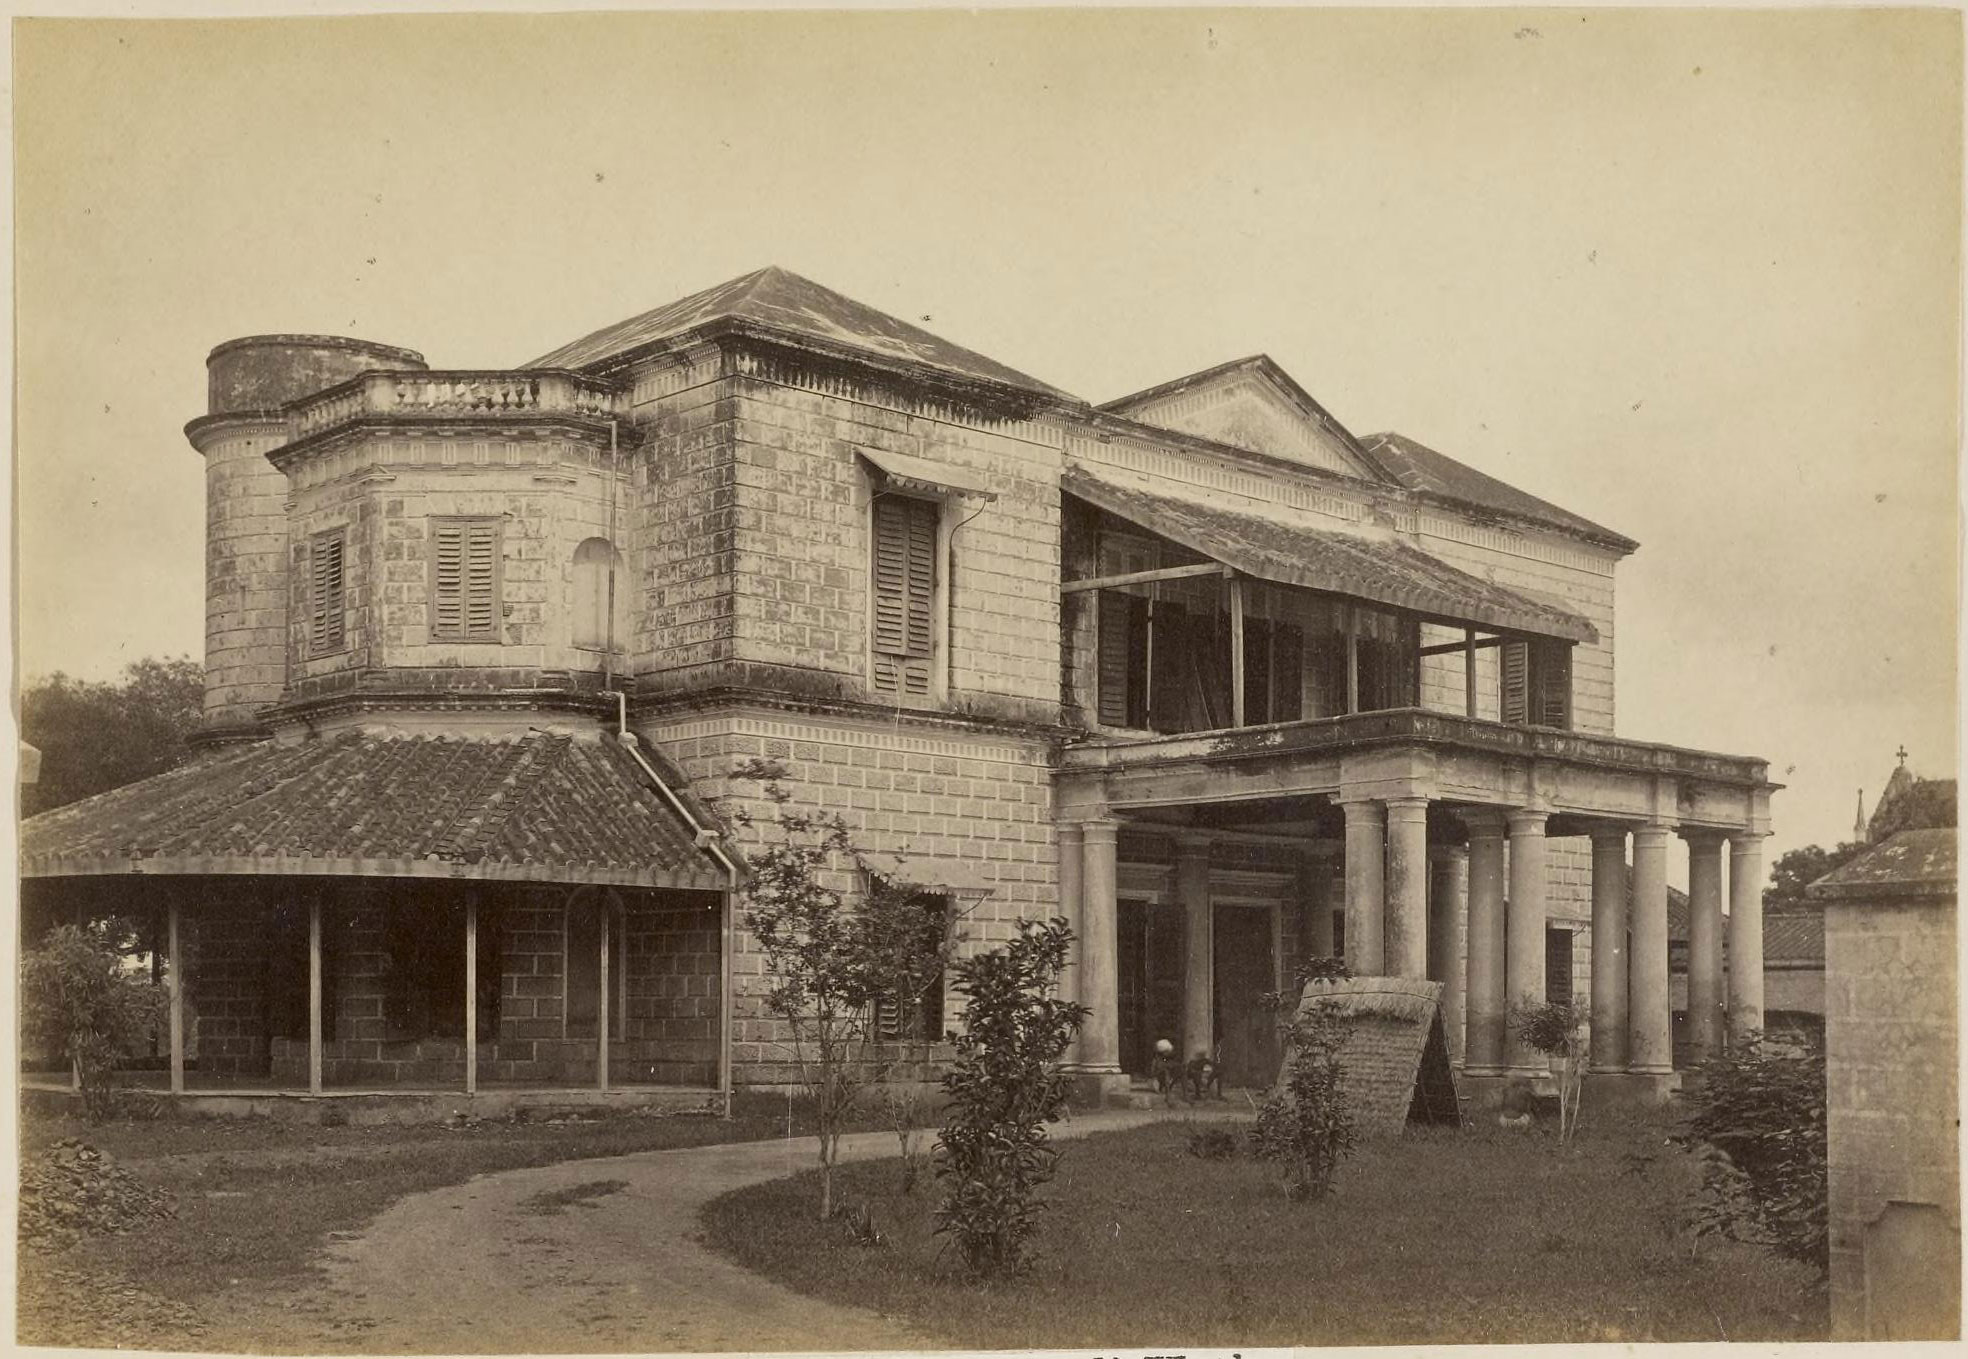 Kunkurwali kothe lucknow 1870 39 s old indian photos for Home architecture in lucknow